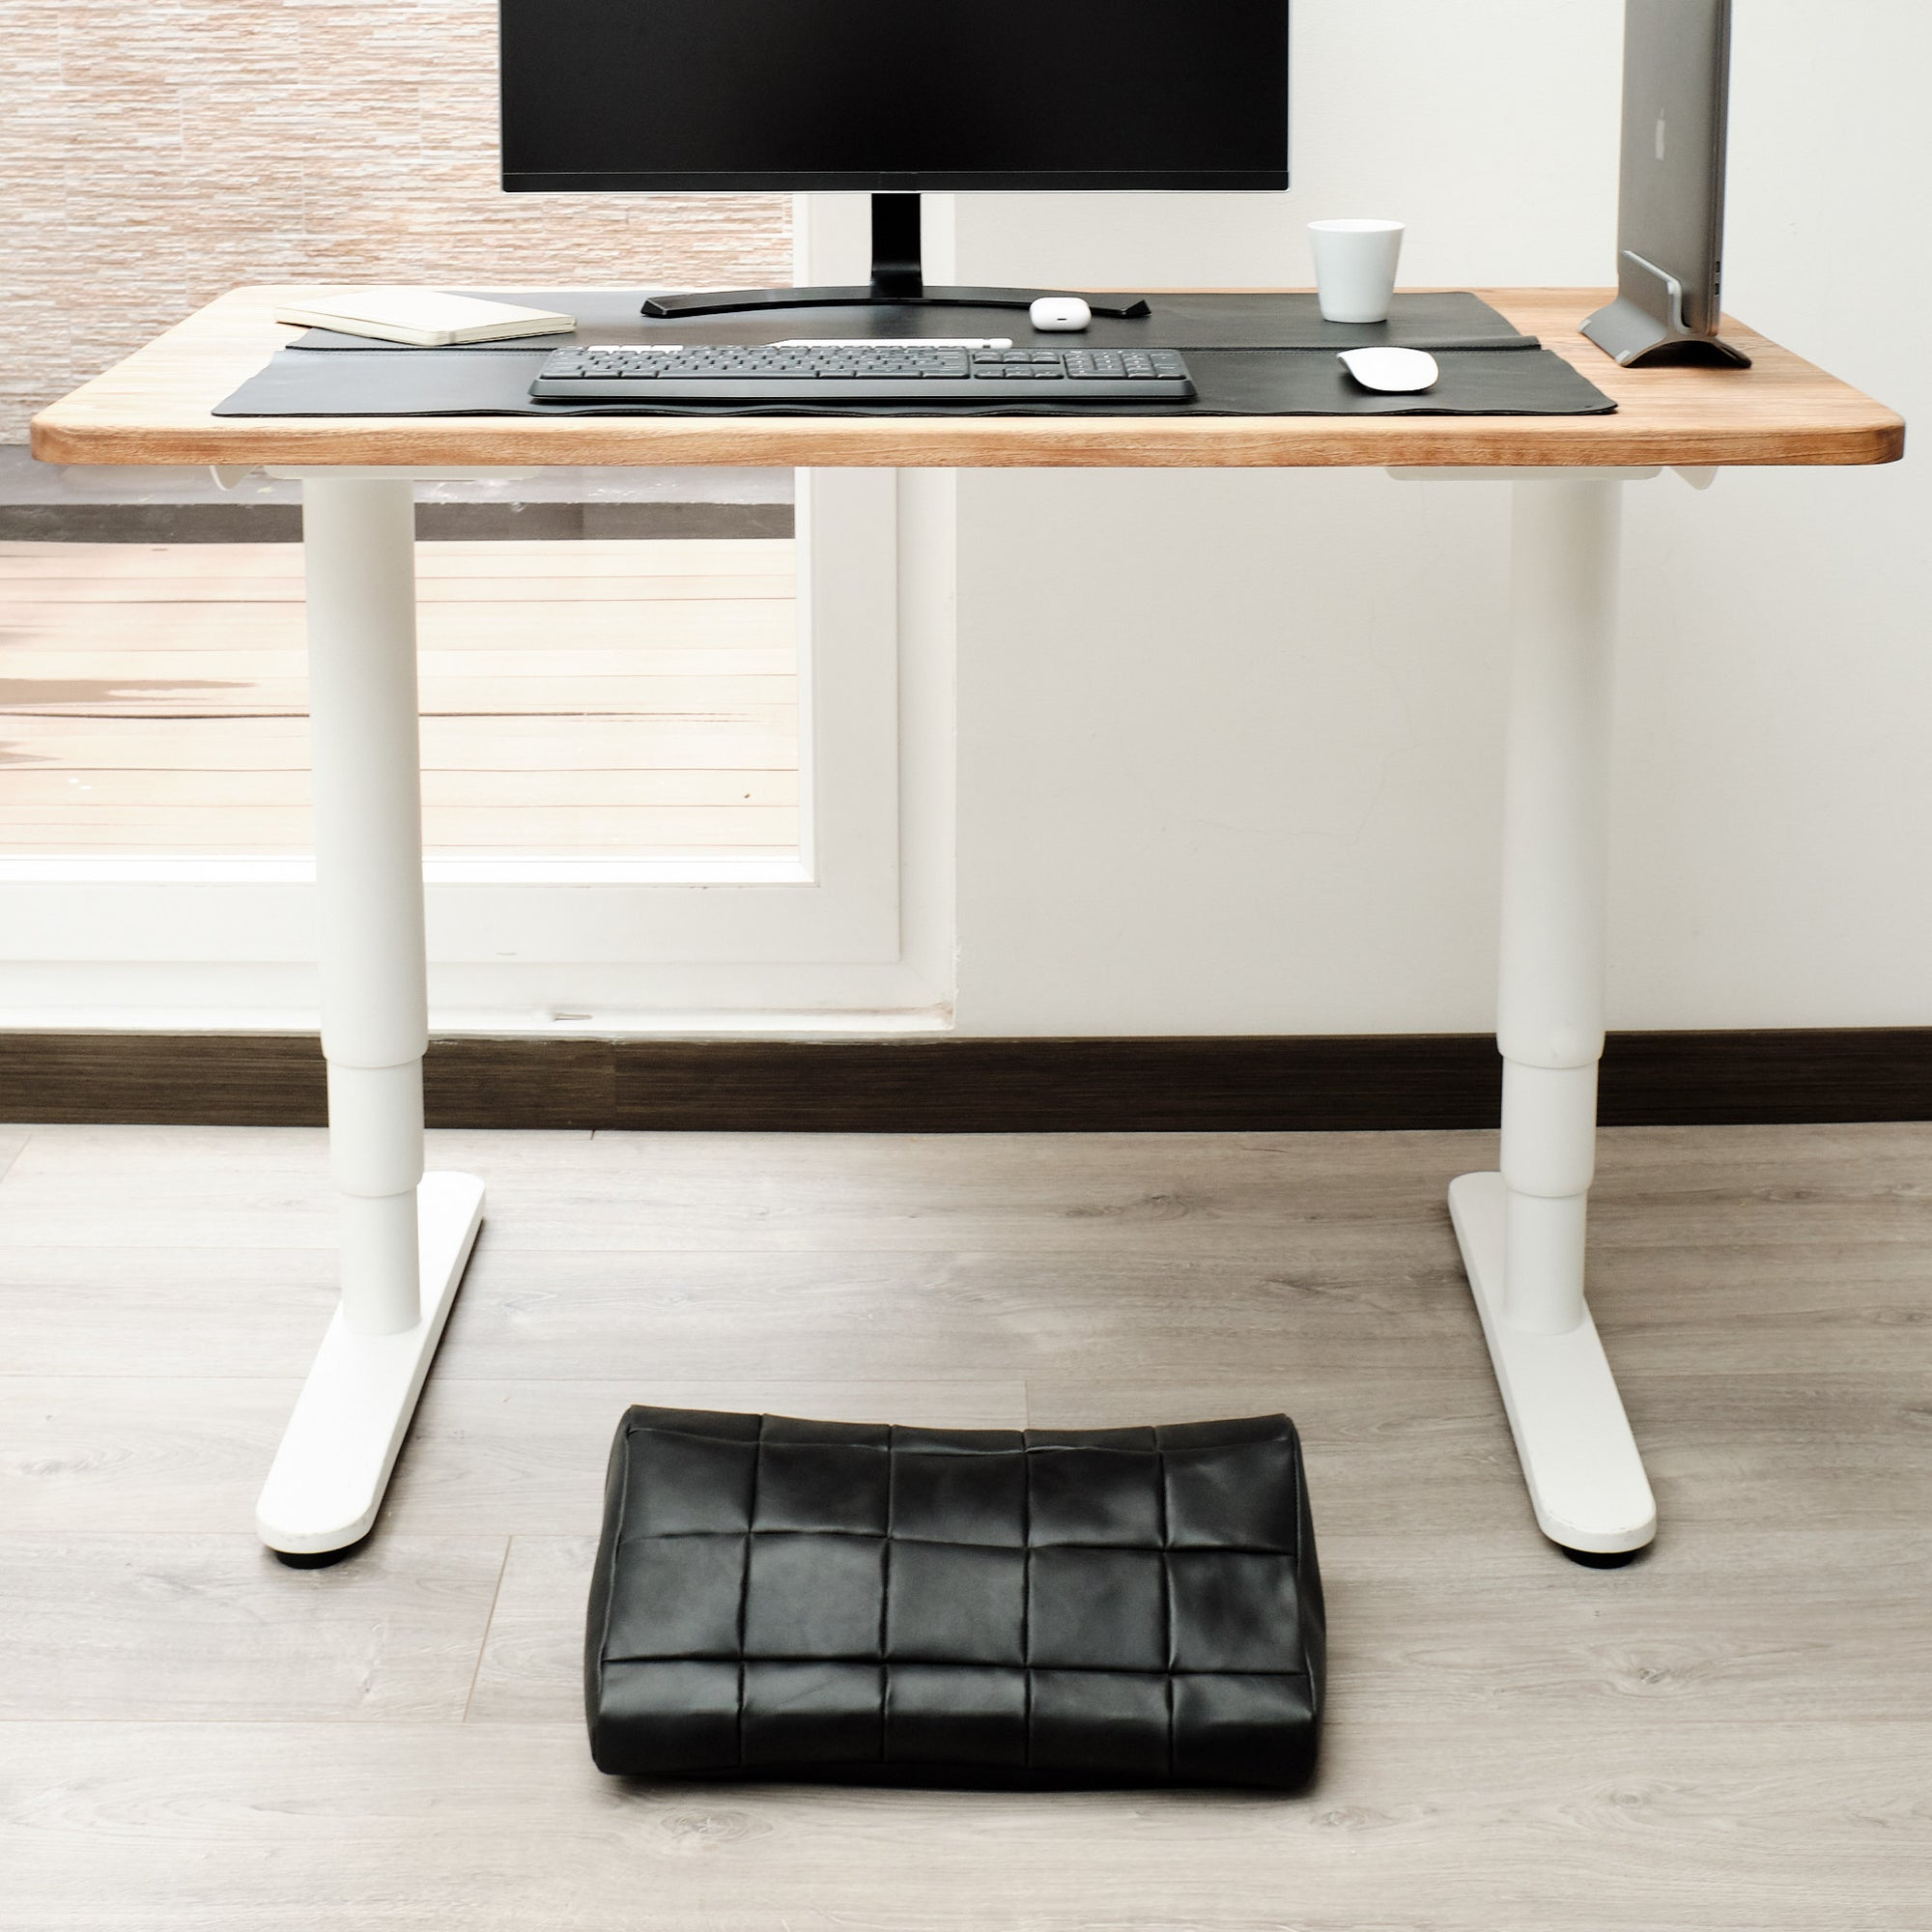 Cover. Ergonomic Desk Footrest Cover in Black by Modoun Home Decor